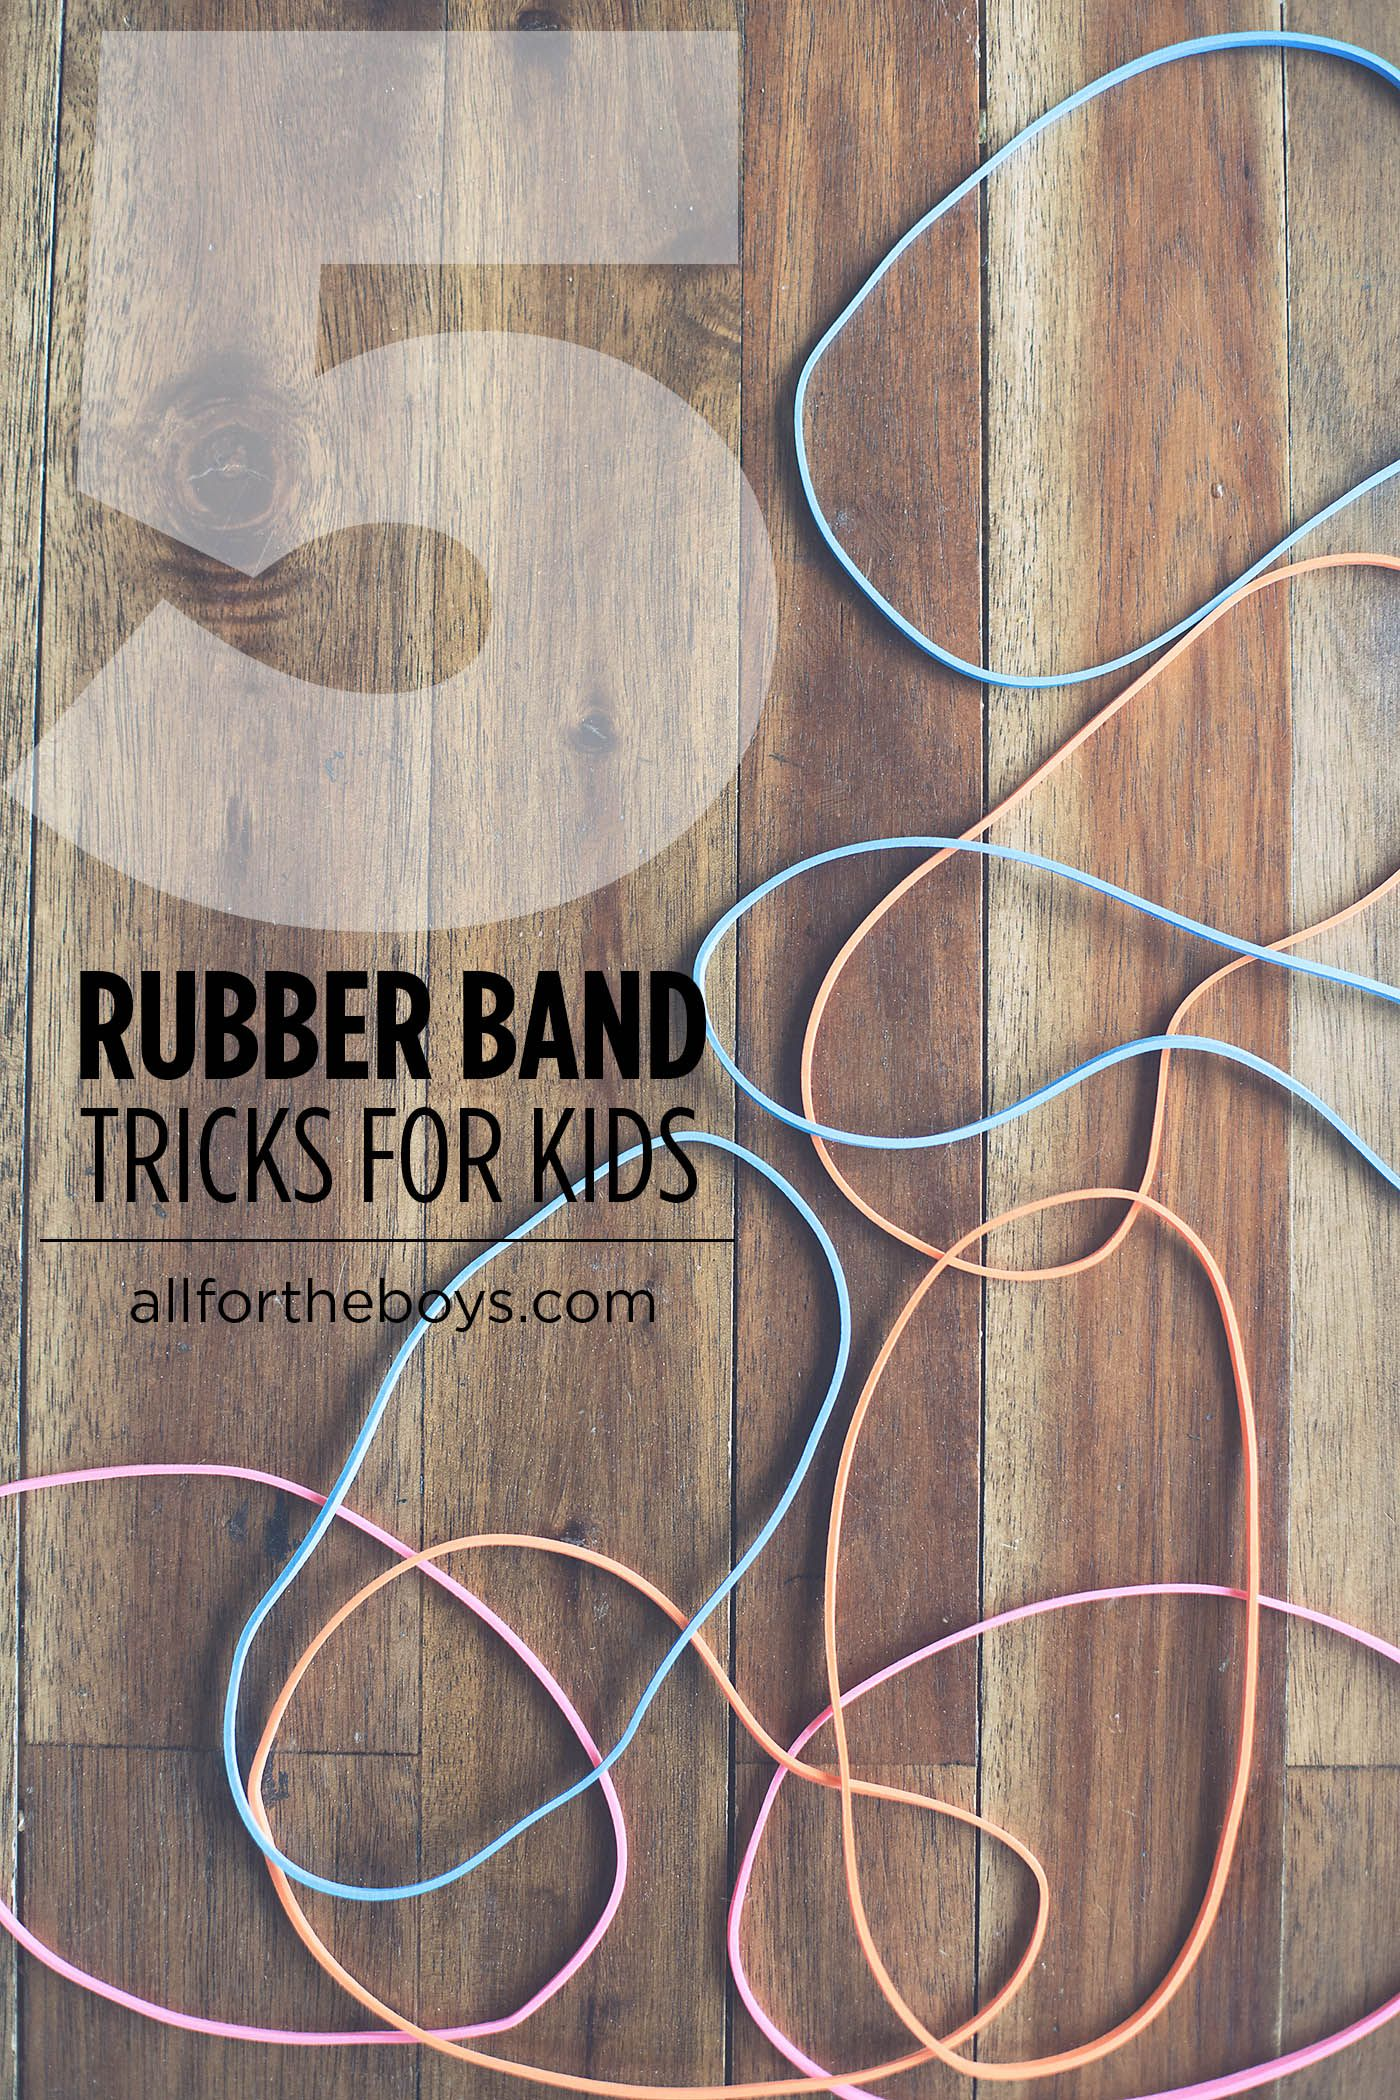 5 Rubber Band Tricks For Kids All For The Boys Magic Tricks For Kids Card Tricks For Kids Easy Magic Tricks